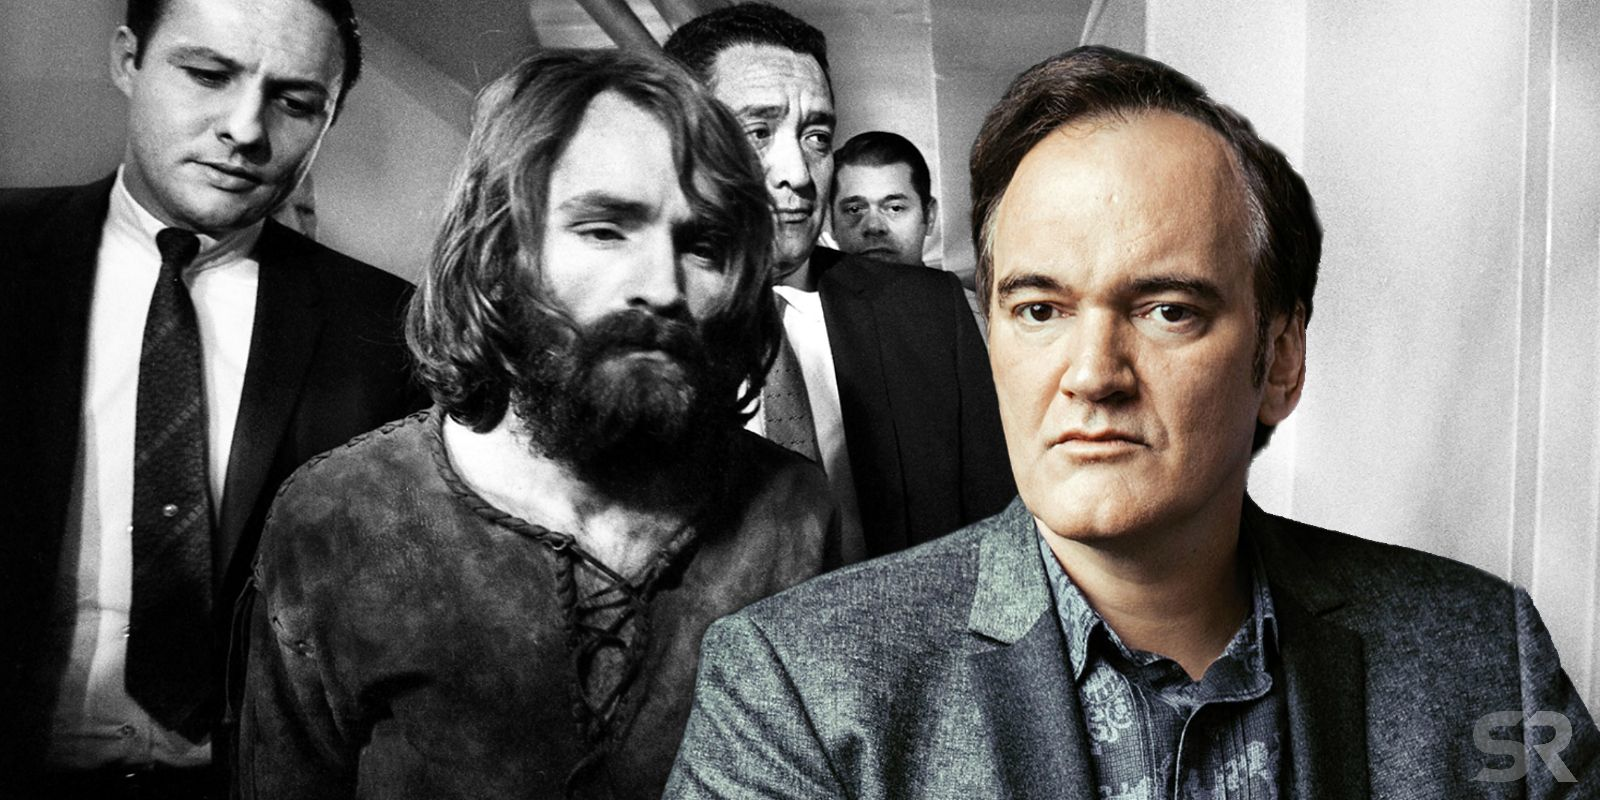 tarantino s once upon a time in hollywood casts its charles manson